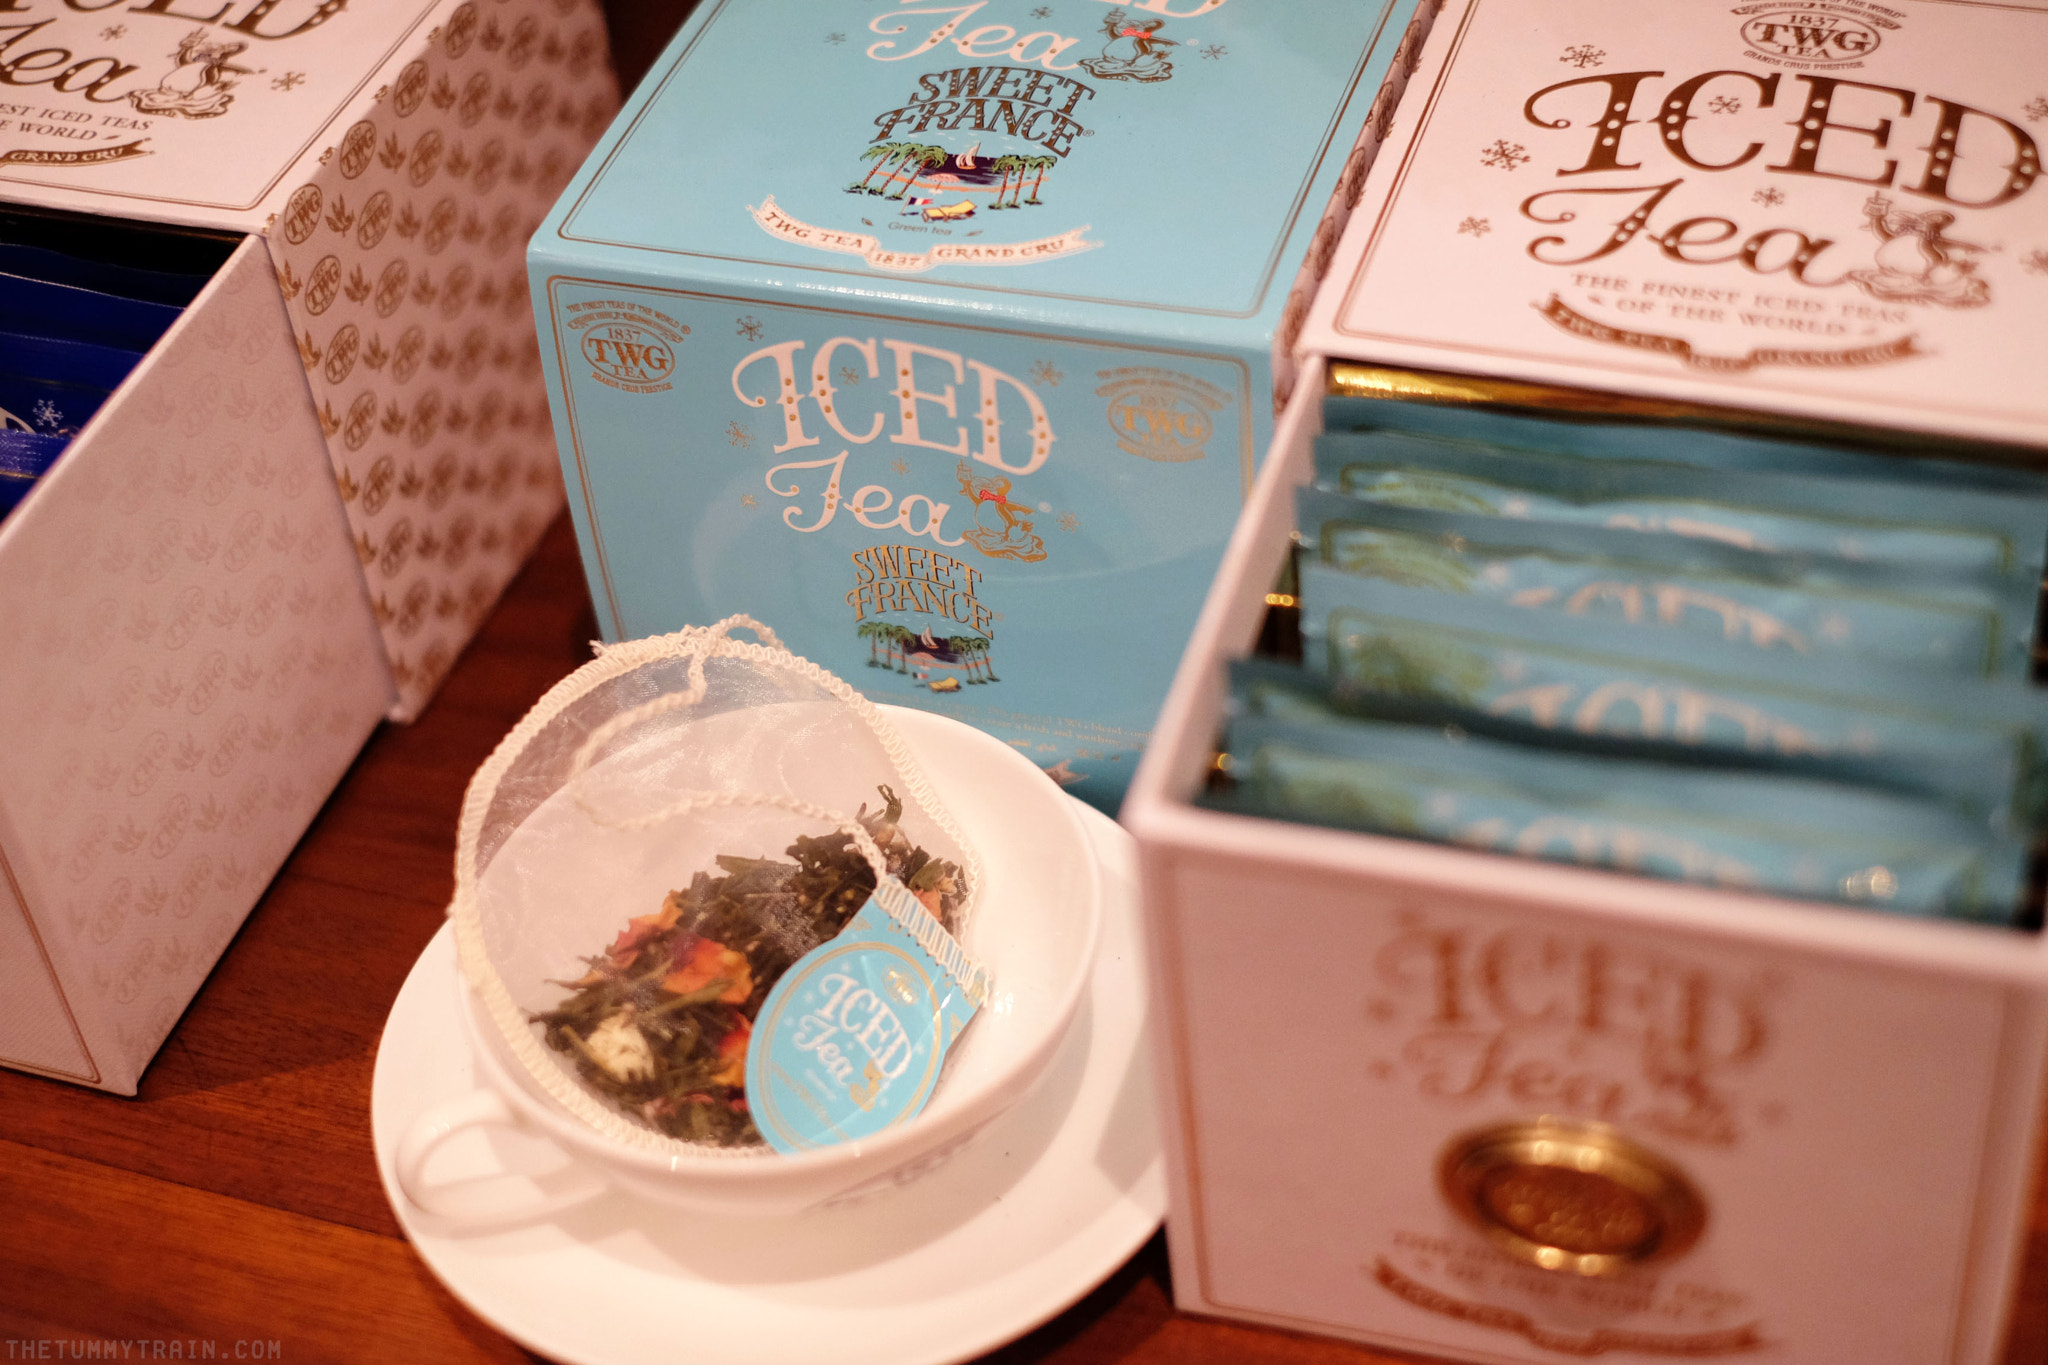 1fc4a0ccc88a34fc376862206486f29b - Beat the heat in luxurious style with the new TWG Iced Teas